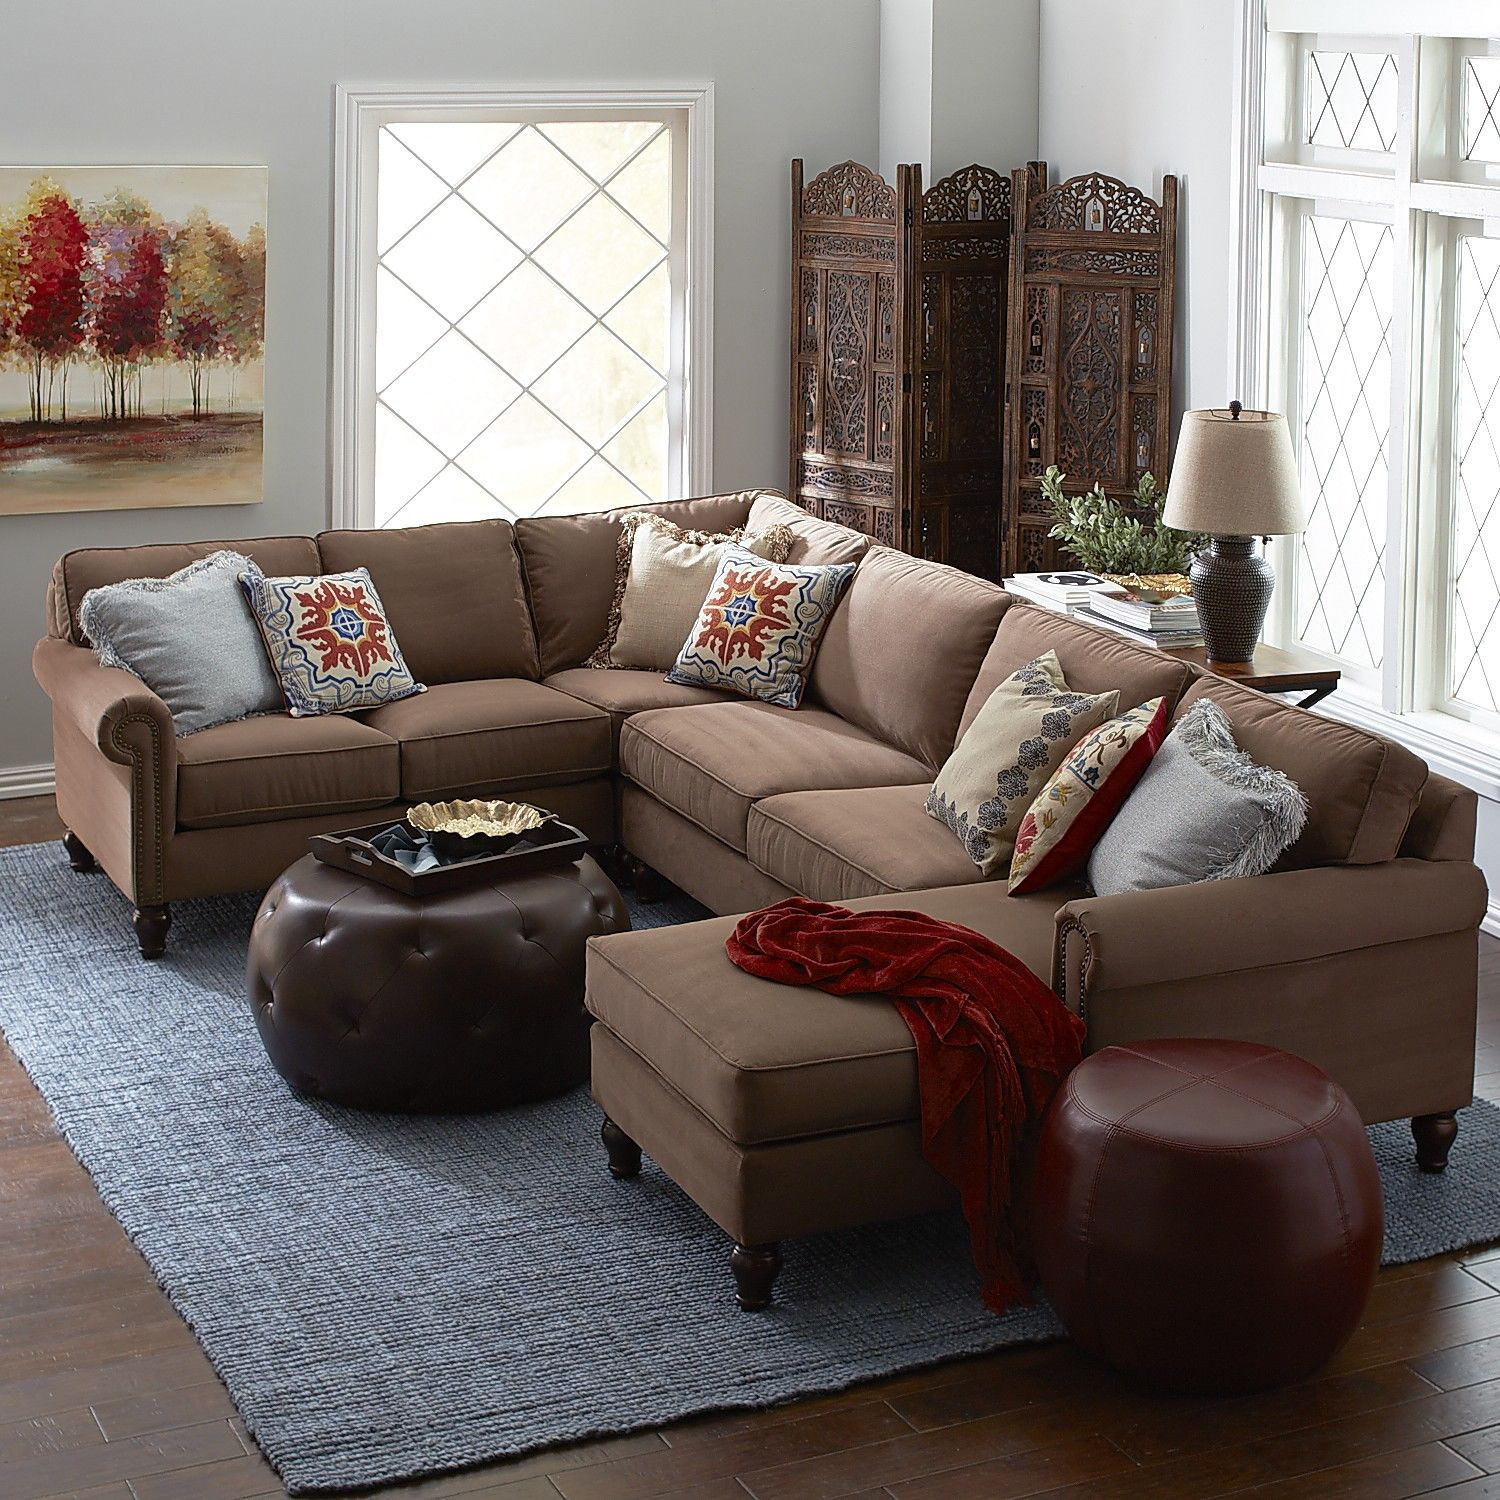 Build Your Own Mahogany Brown Rolled Arm Sectional Collection - Pier 1 living room